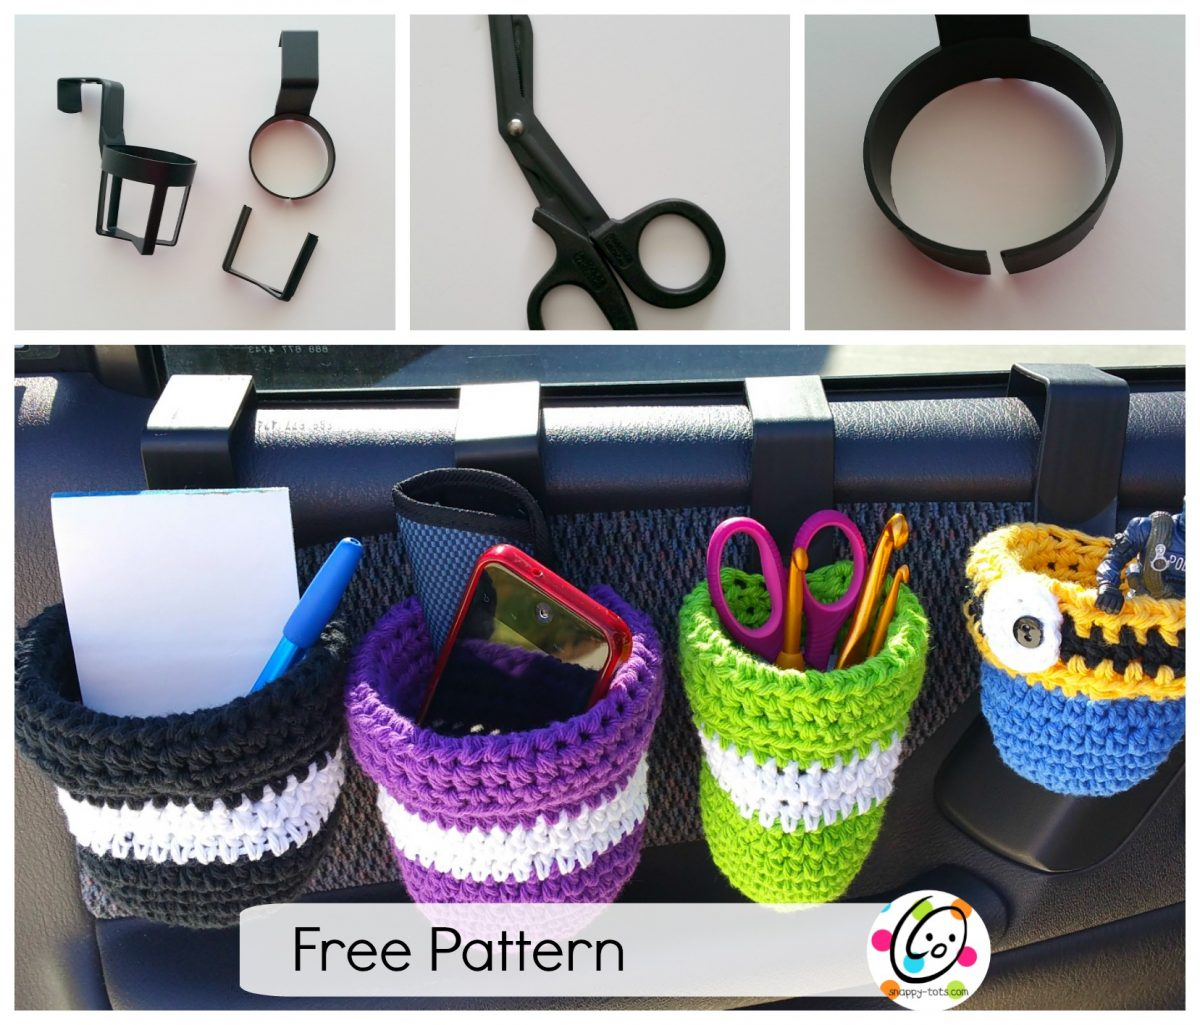 Freebie: Auto Caddy Crochet Pattern